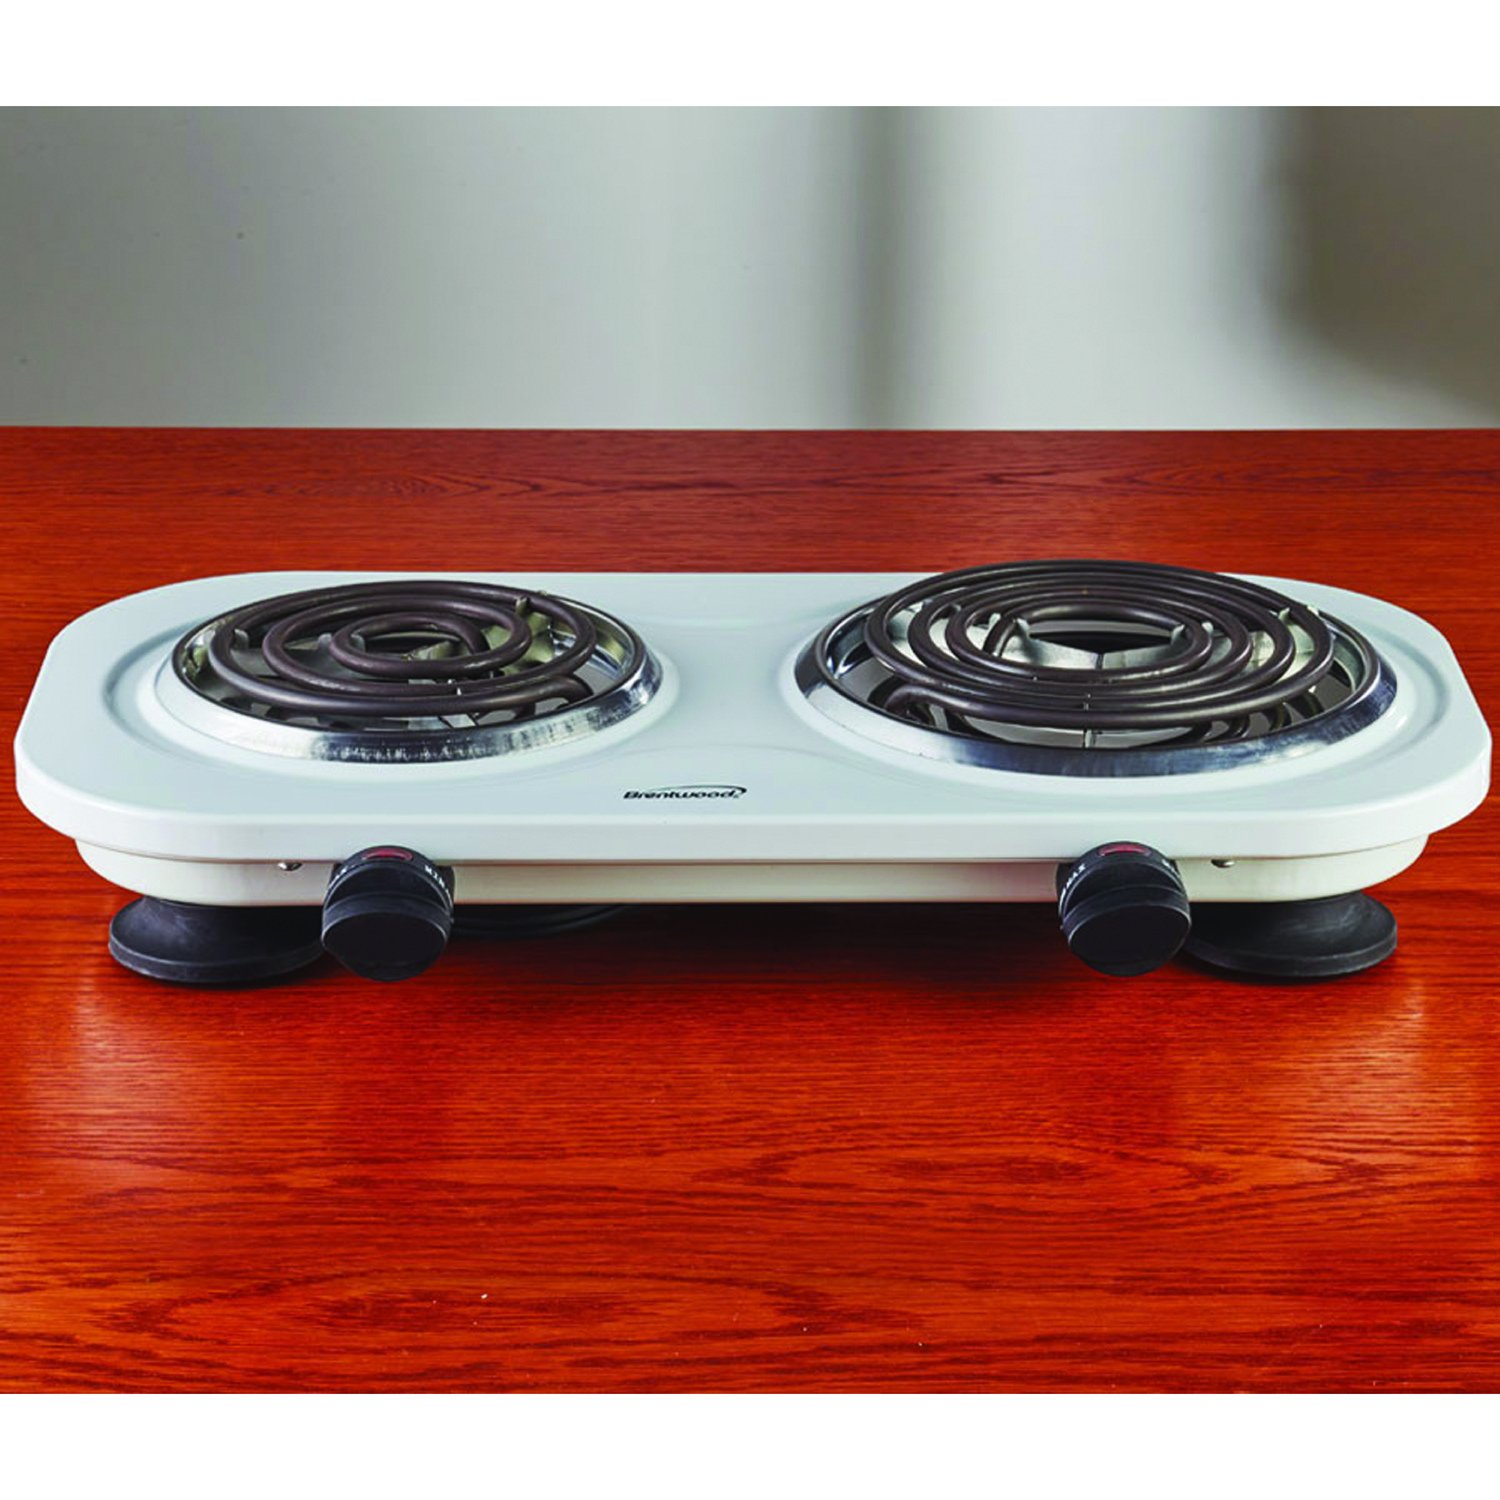 Brentwood TS-321W 1000w Single Electric Burner, White by Brentwood (Image #3)